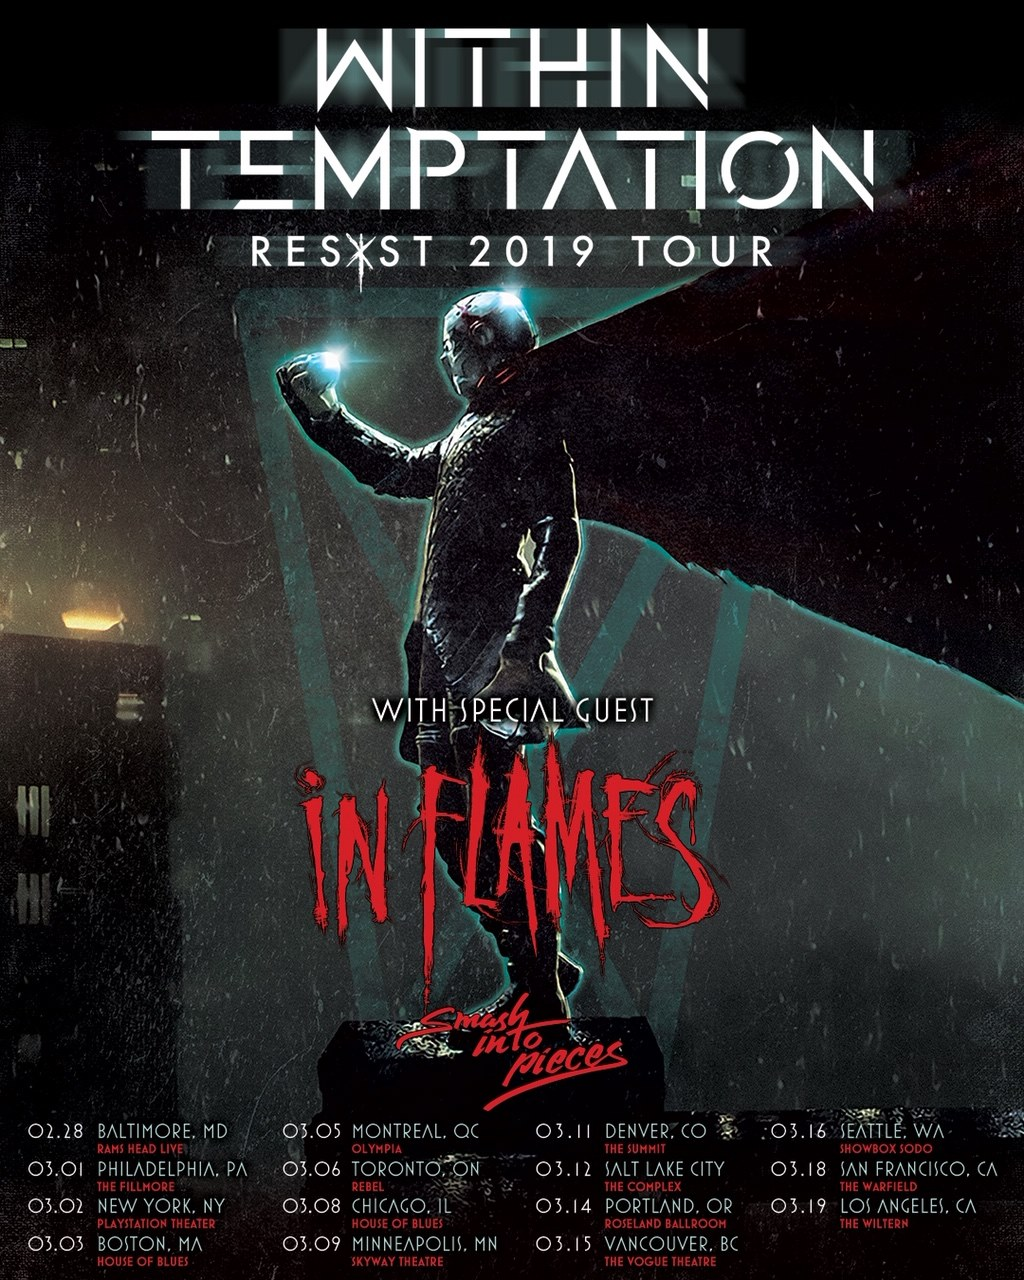 Within Temptation In Flames Tour RESIST Live 2019